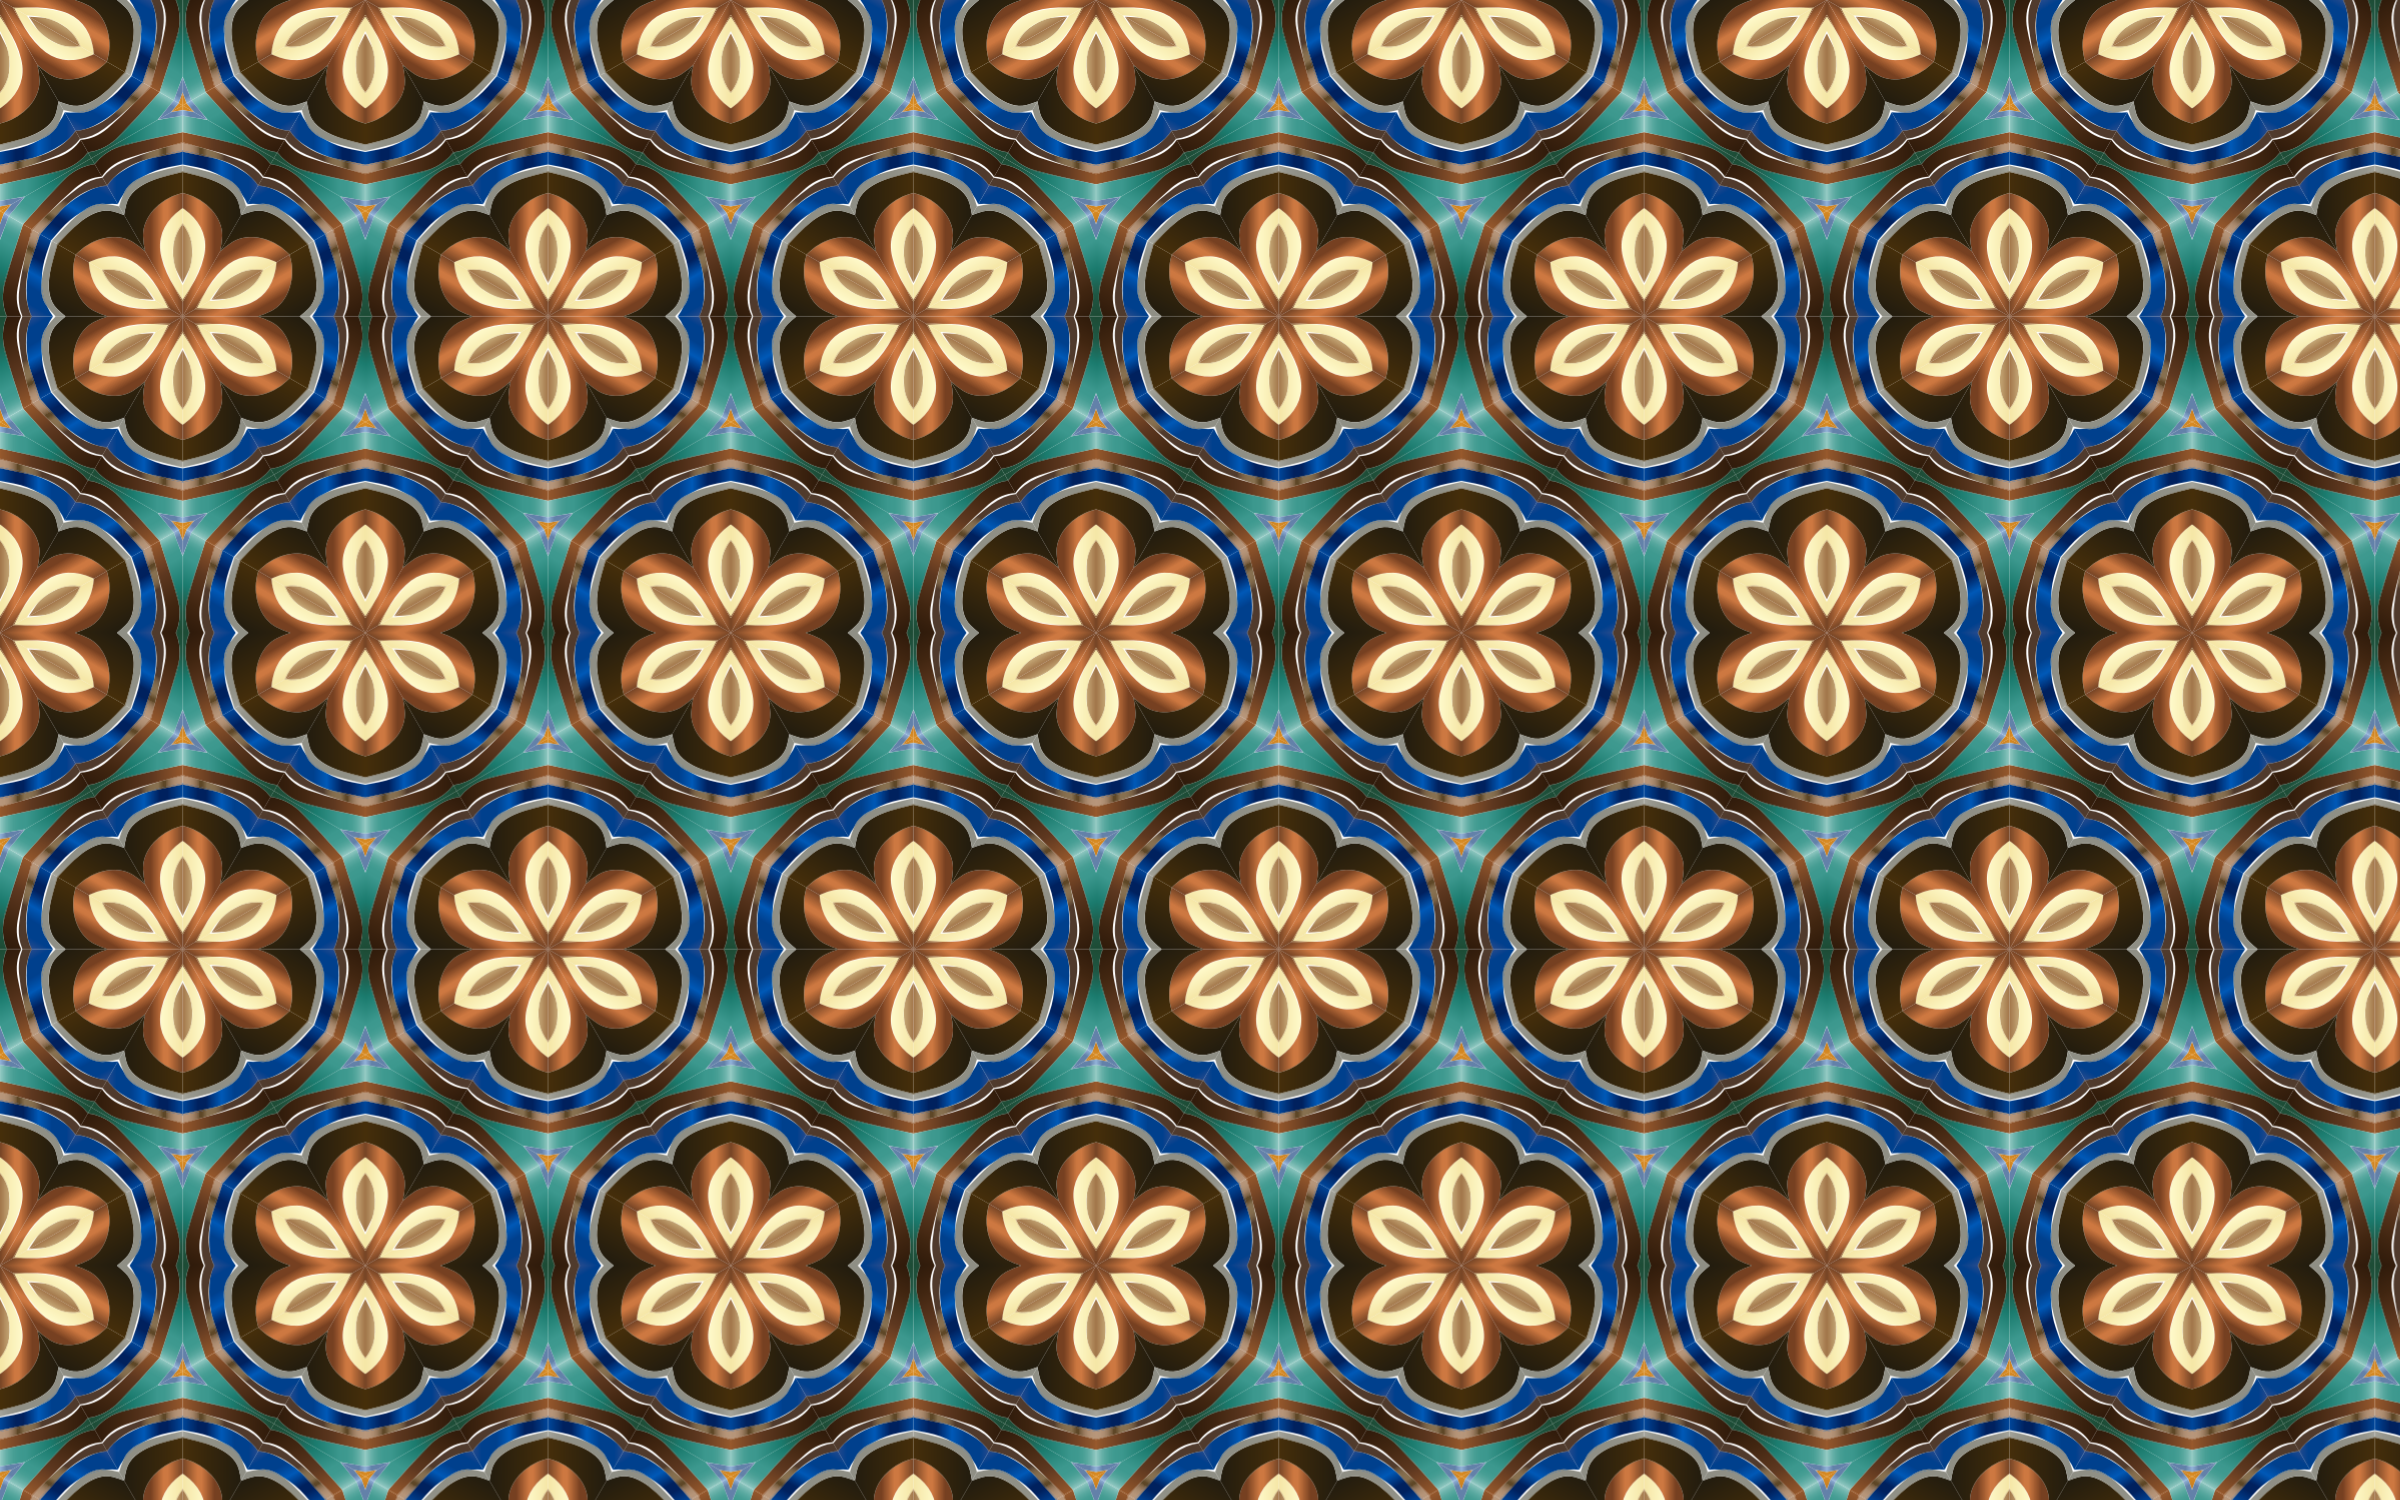 Seamless Pattern 64 by GDJ